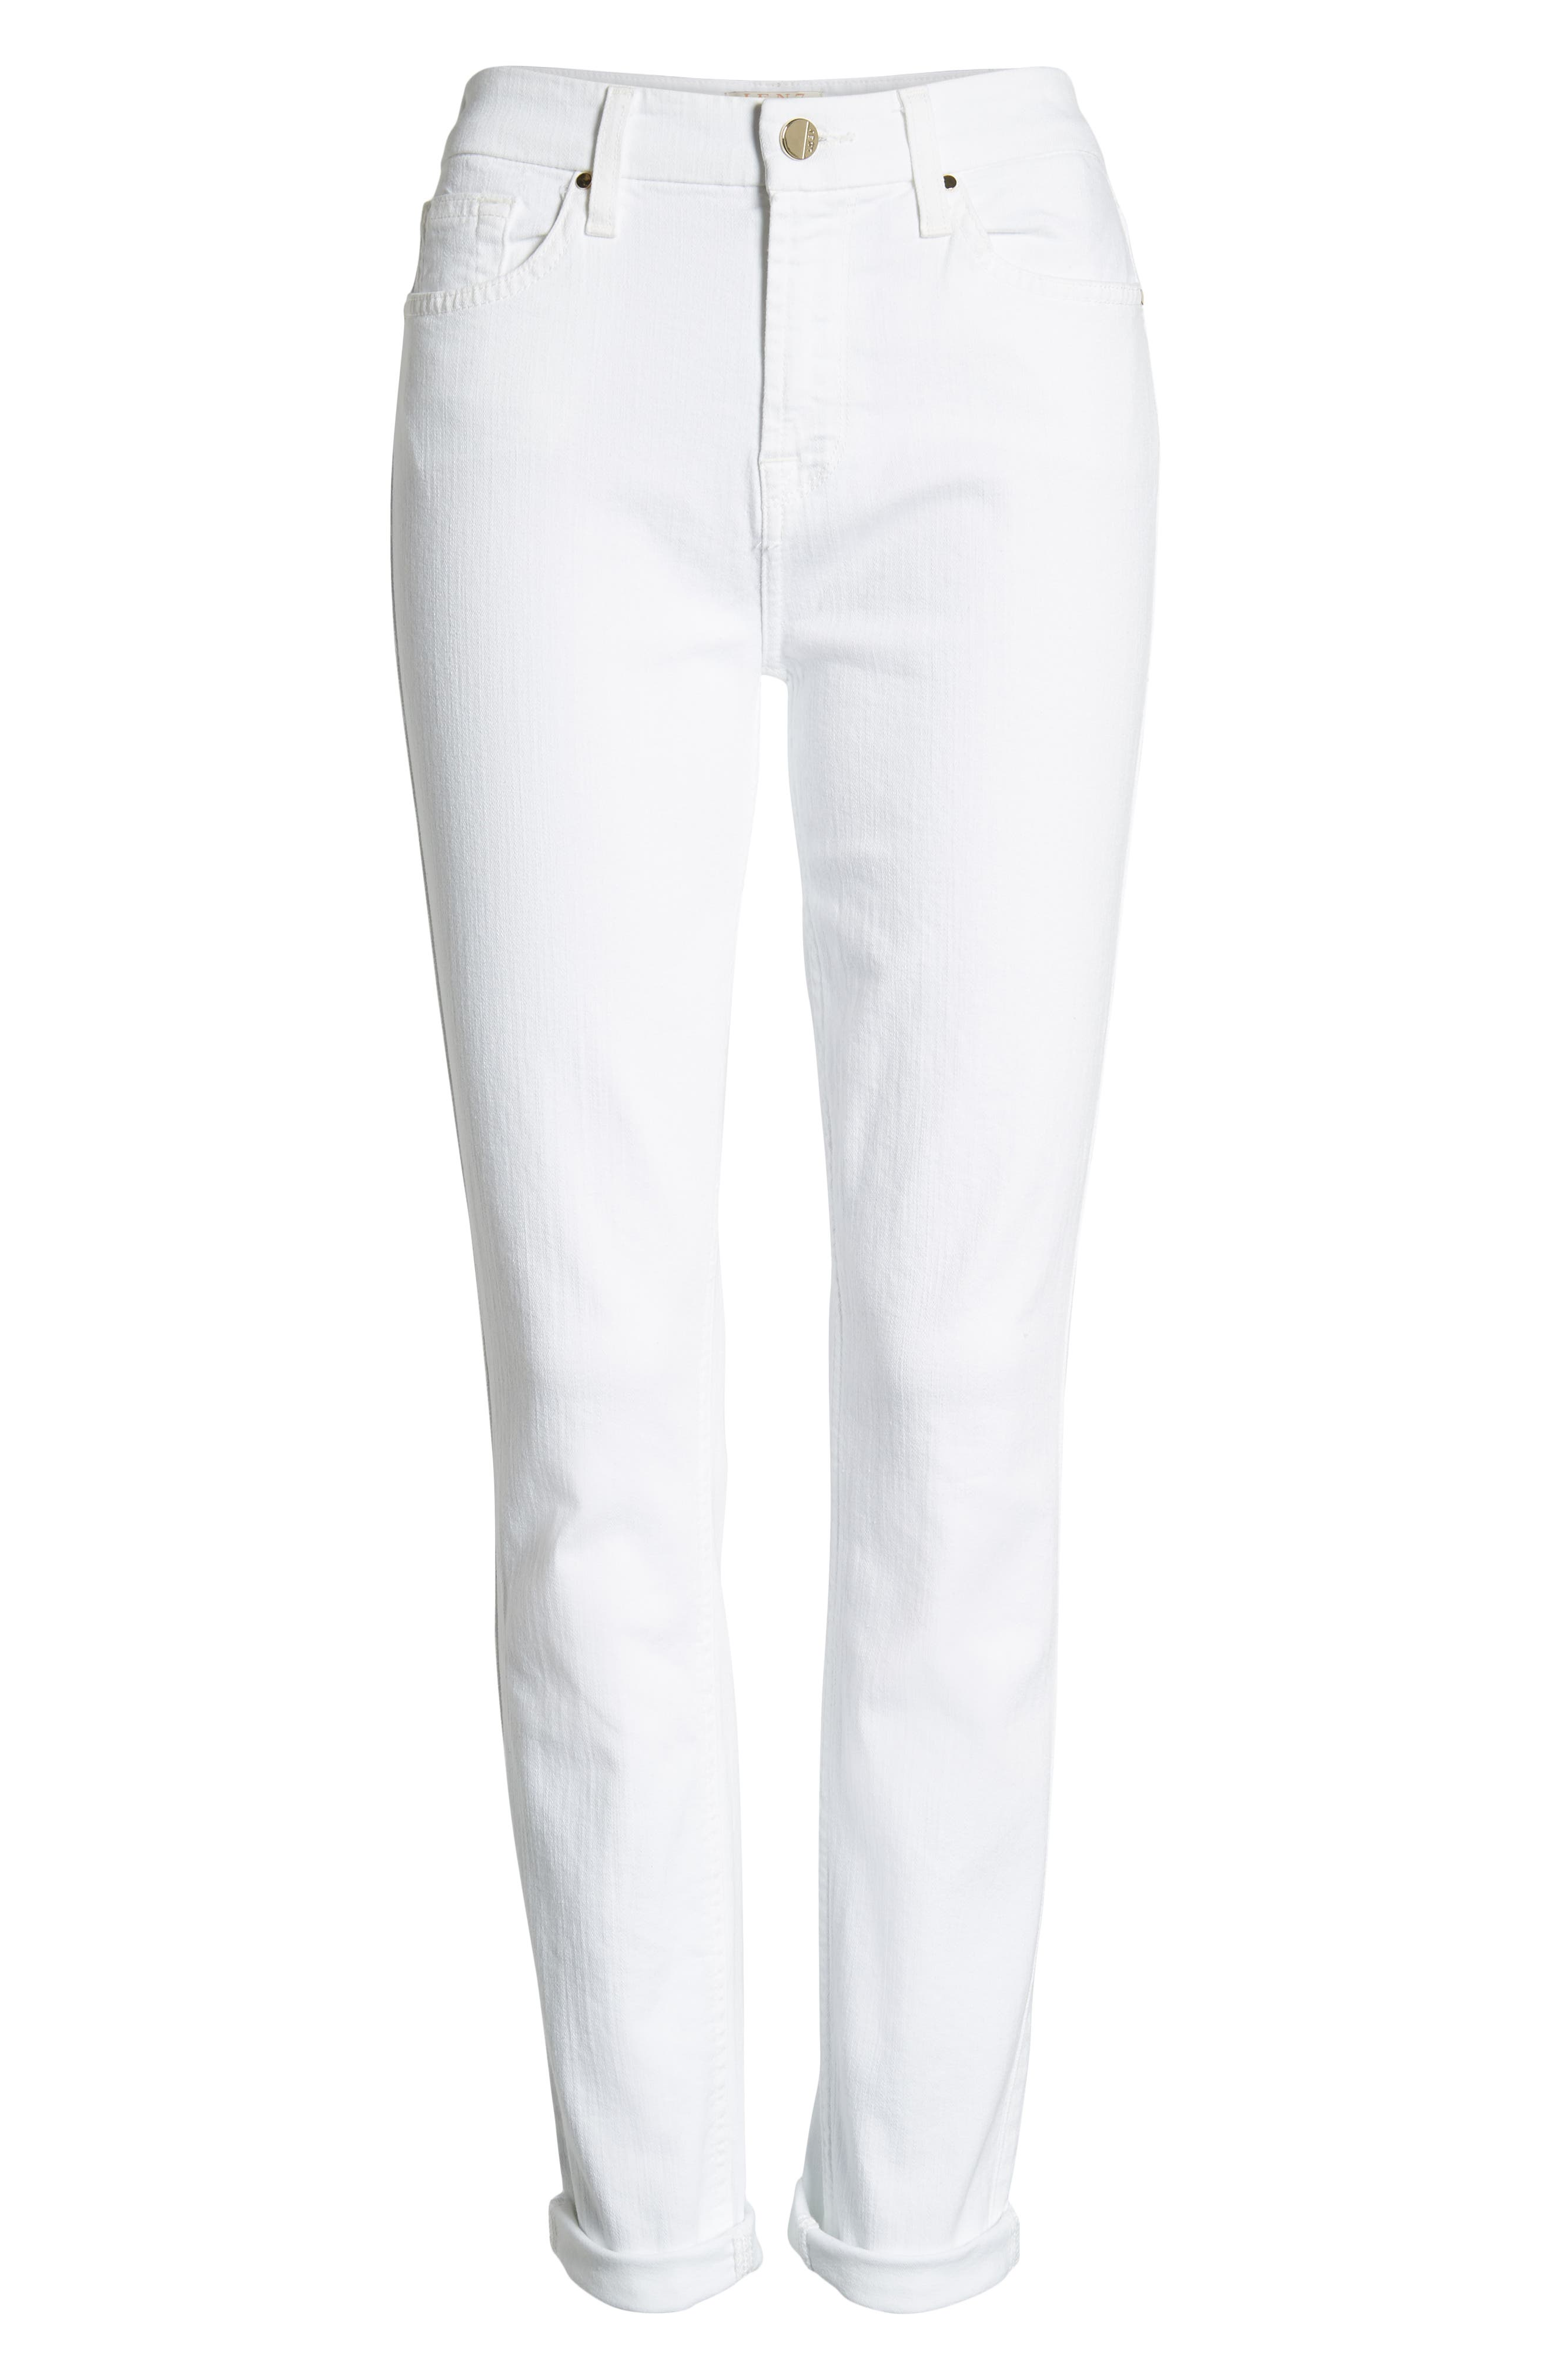 JEN7 BY 7 FOR ALL MANKIND,                             Stretch Skinny Jeans,                             Alternate thumbnail 6, color,                             WHITE